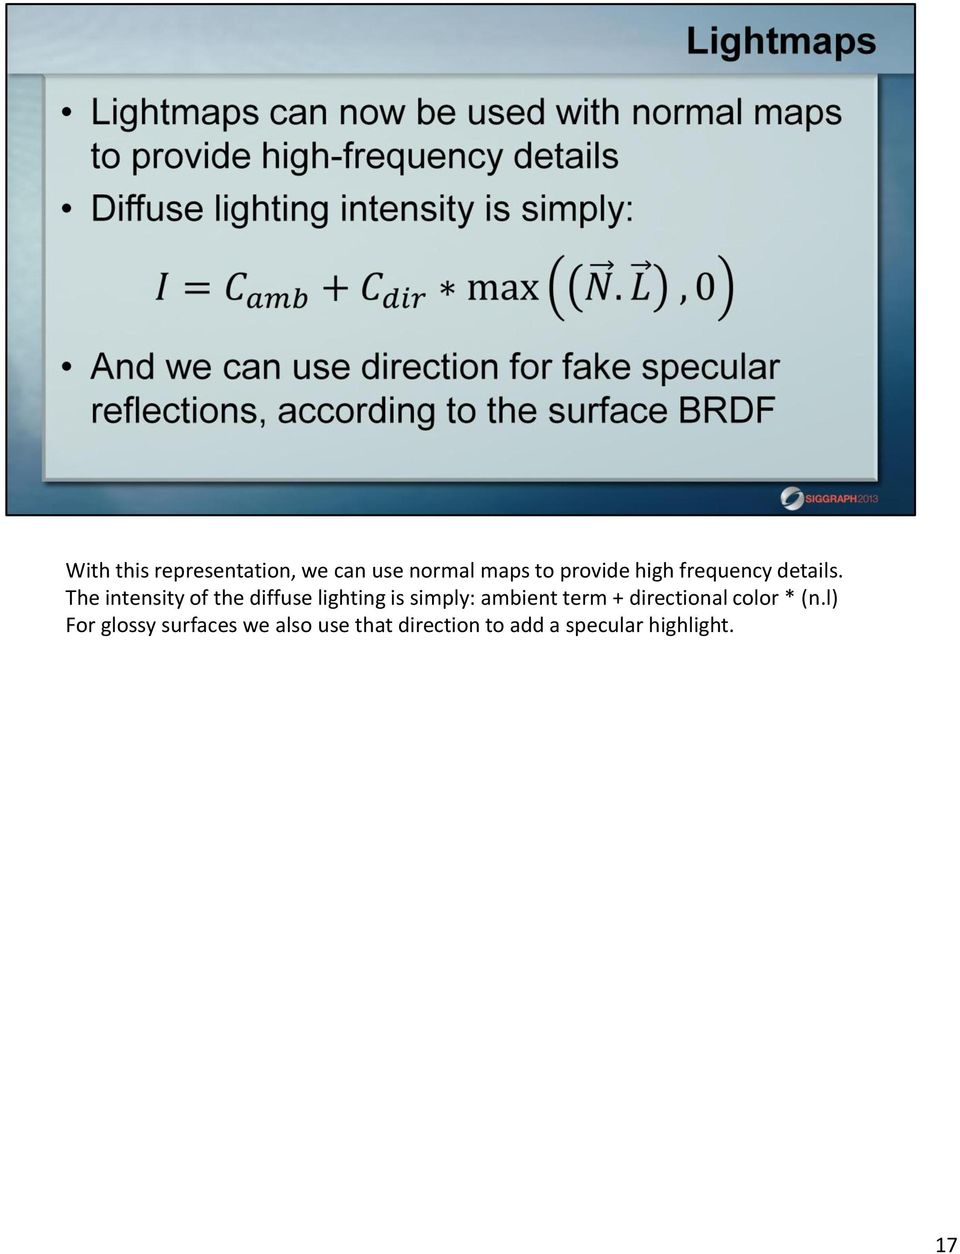 The intensity of the diffuse lighting is simply: ambient term